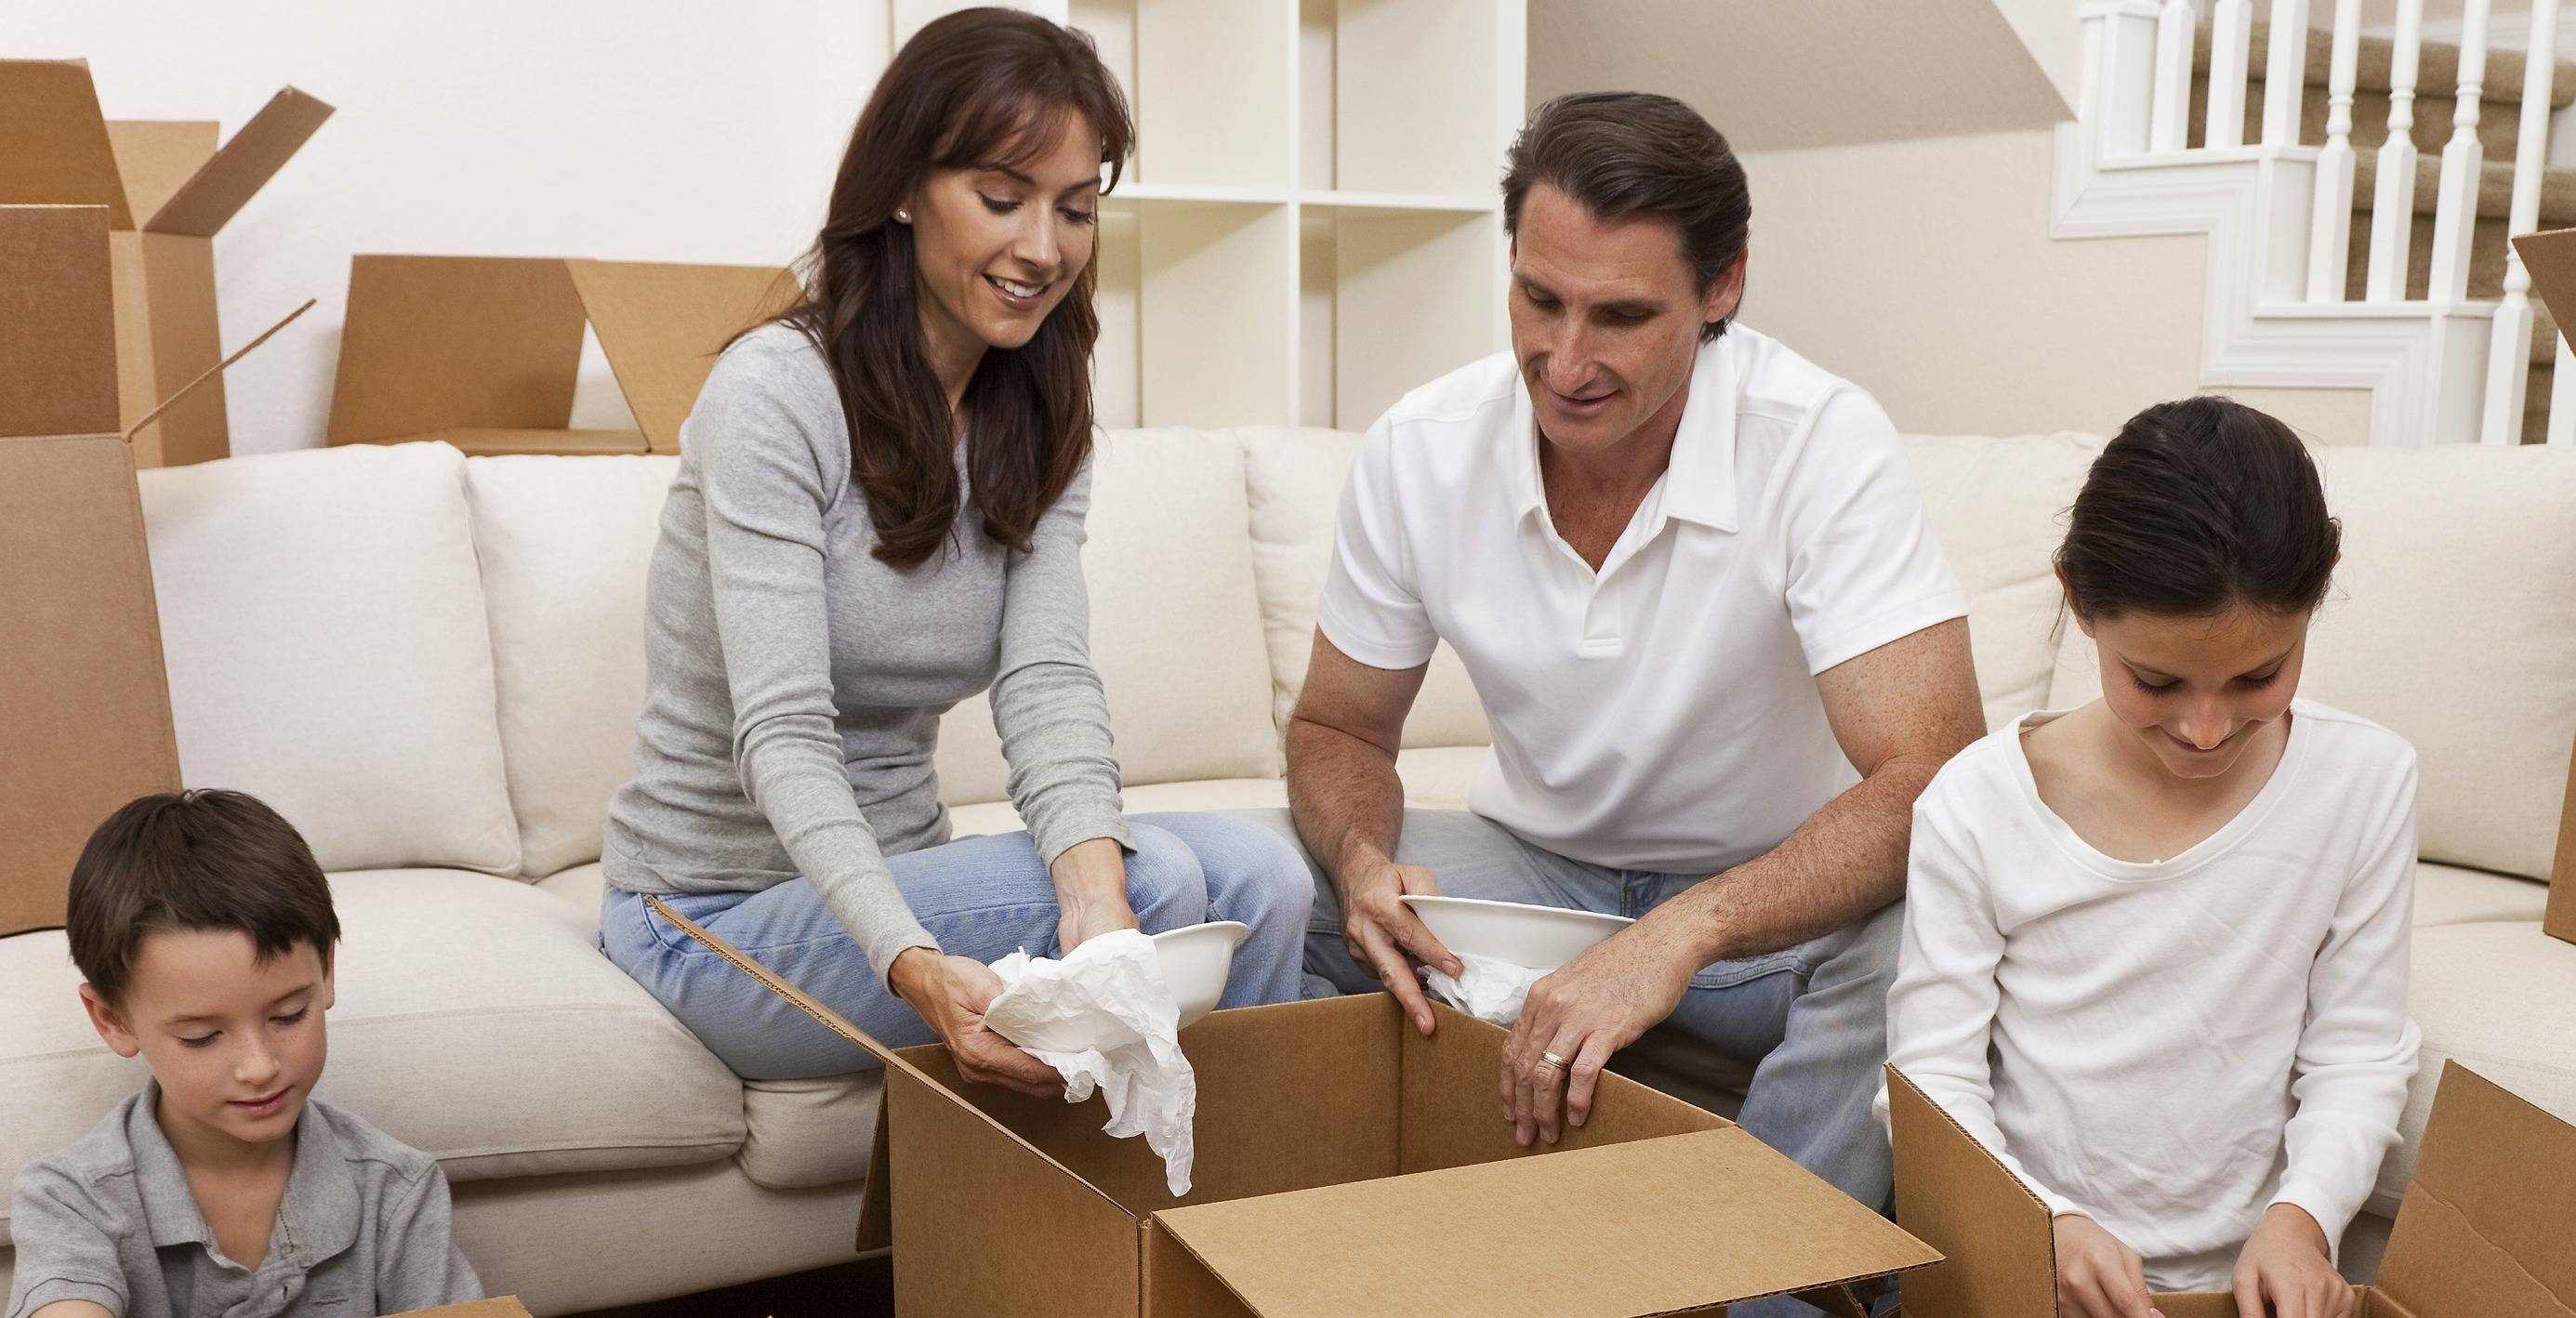 Family of 4 packing for a move, storage elk grove, storage options elkgrove